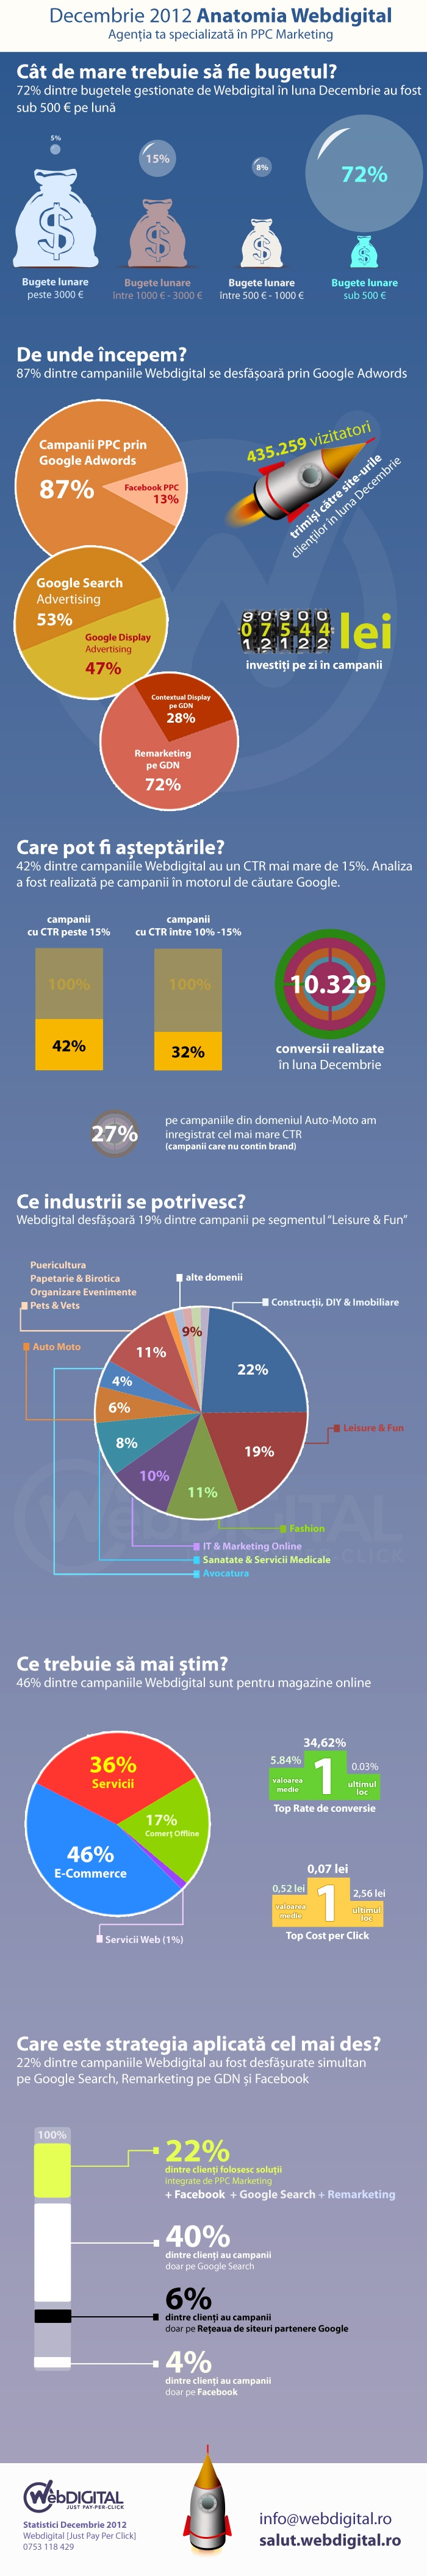 http://www.imunteanu.com/infografice-ppc-marketing-webdigital#decembrie